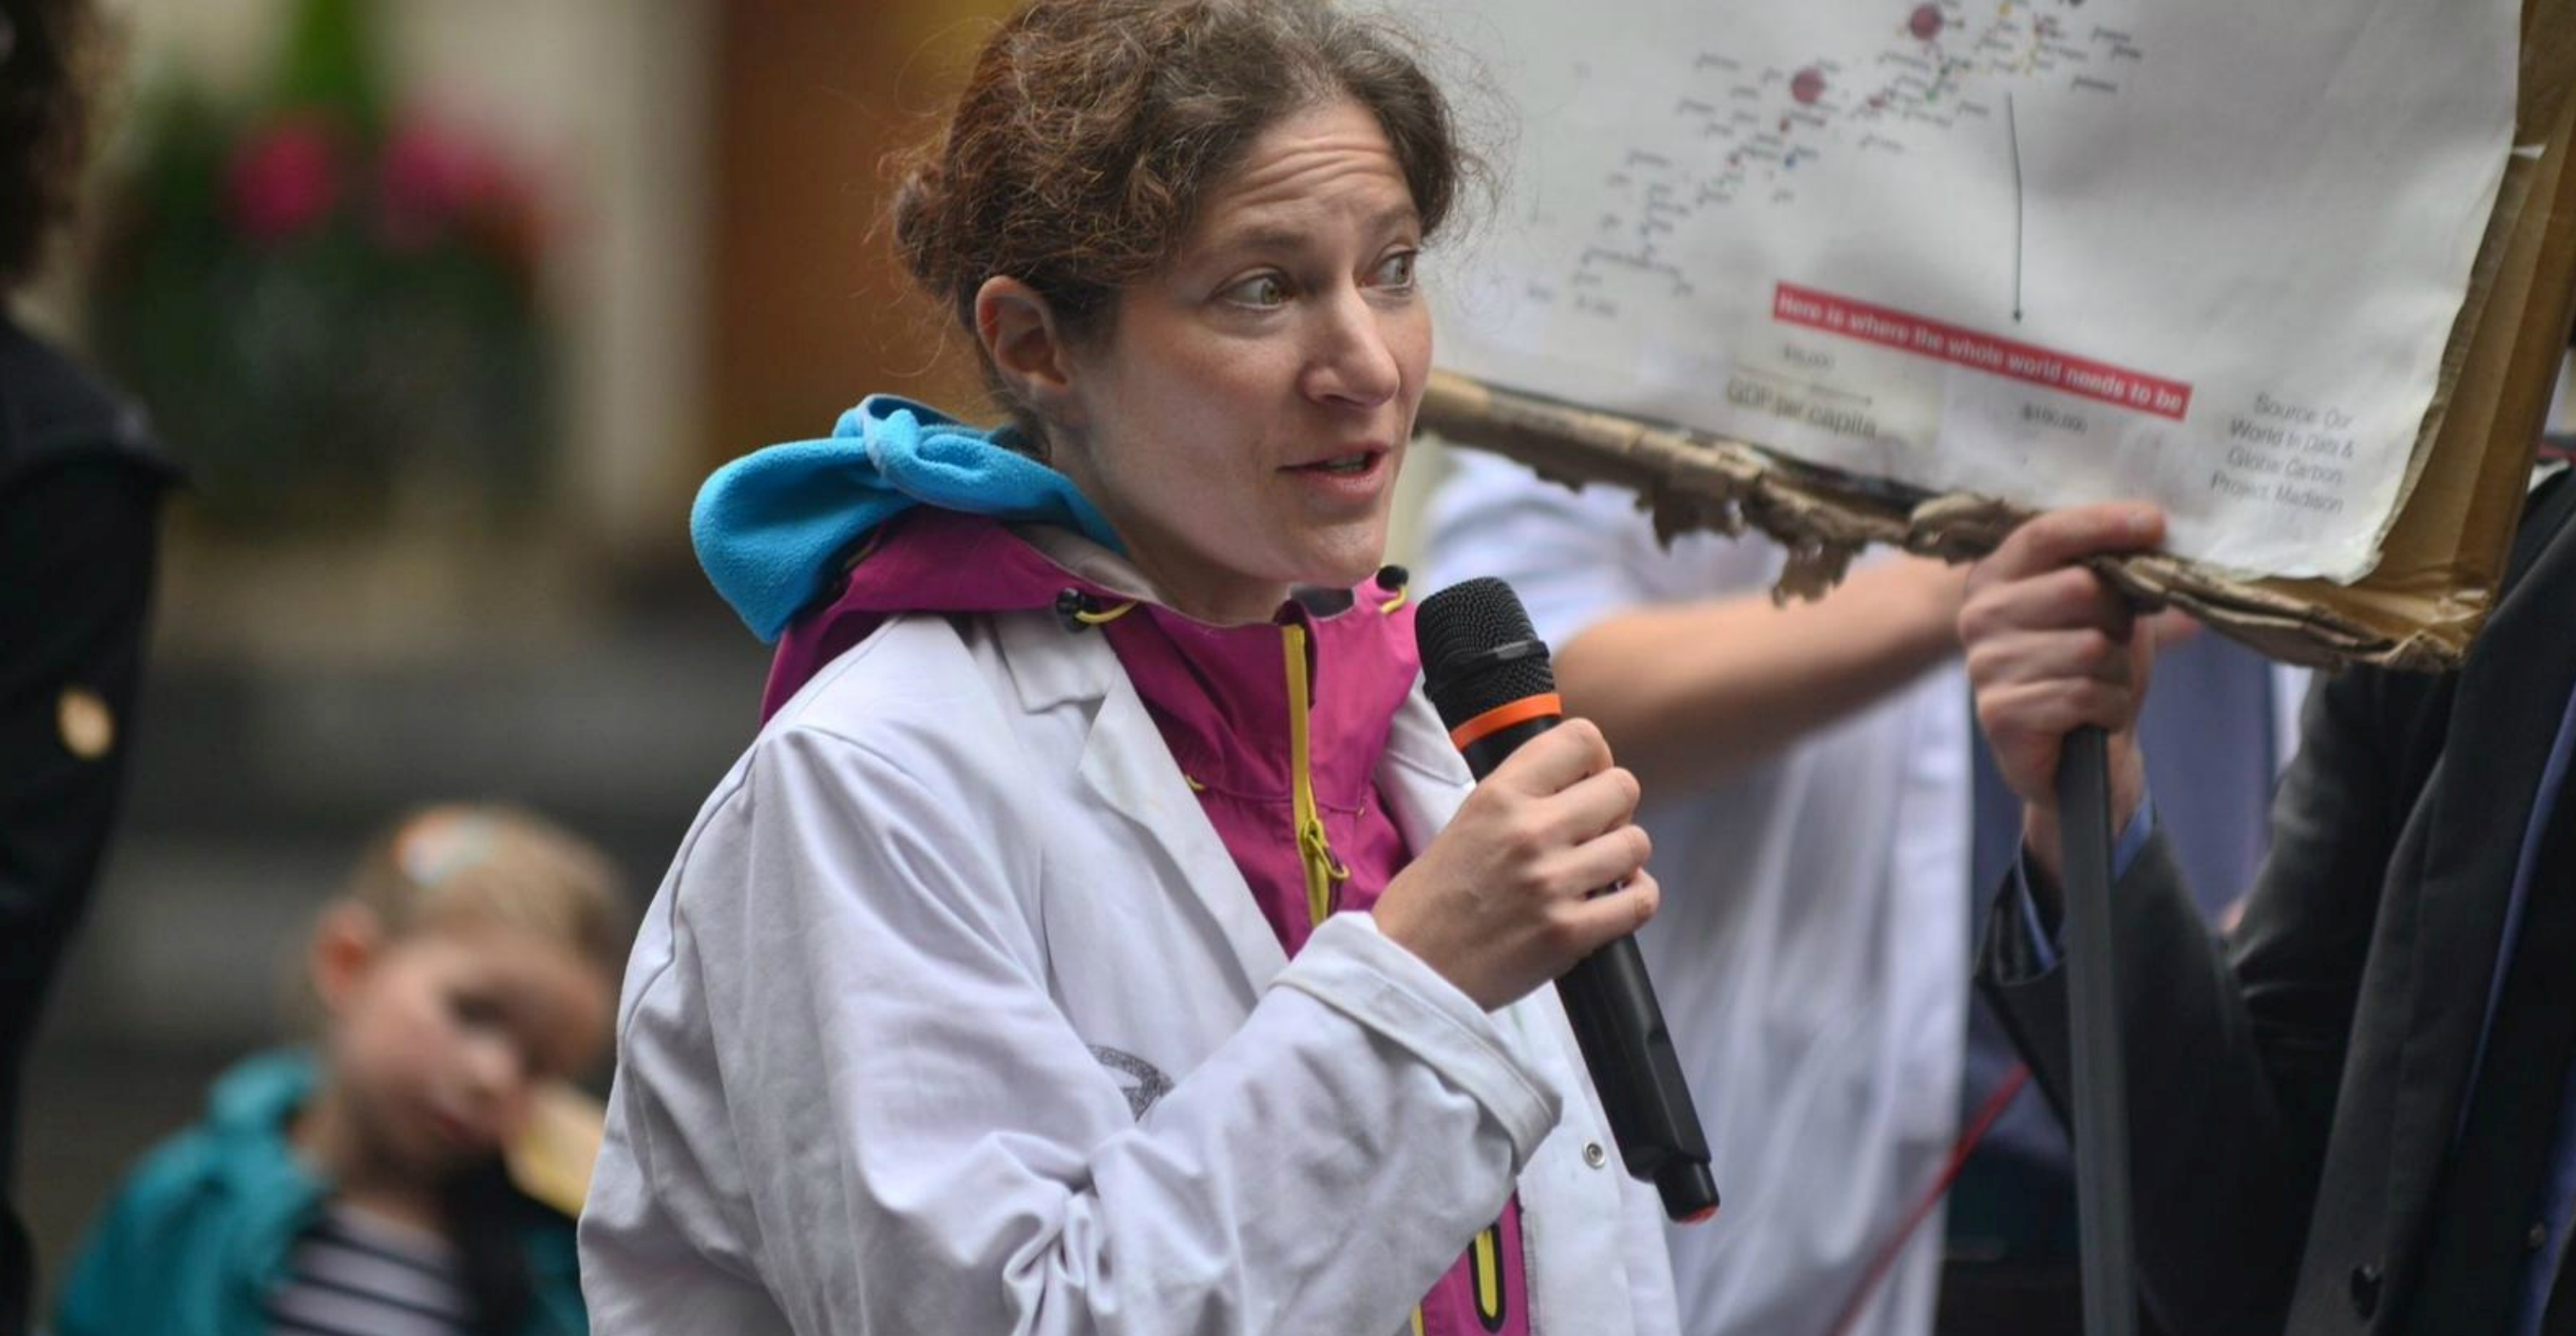 Julia Steinberger, an ecological economist at Britain's University of Leeds, endorses mass civil disobedience to pressure governments to tackle climate change at a protest at London's Science Museum on Saturday. Photo: Louise Jasper/Handout via